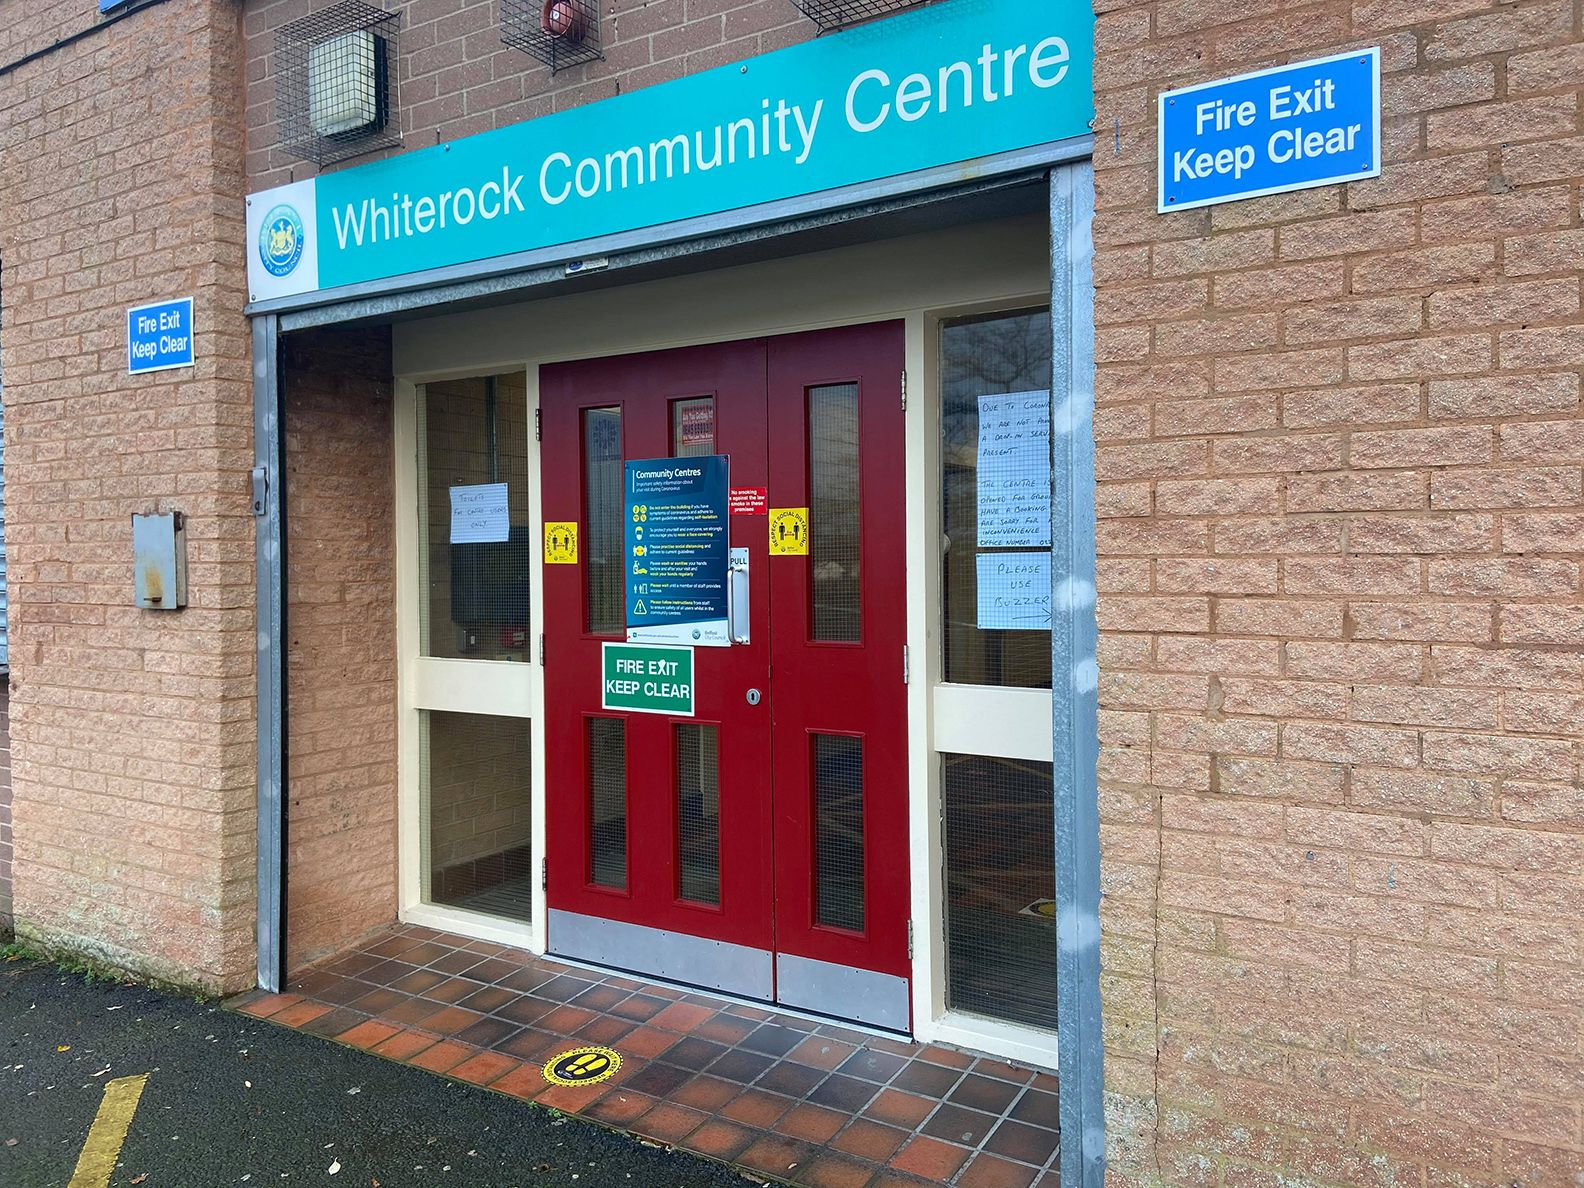 PREFERRED VENUE: Whiterock Community Day Services, based in Whiterock Community Centre, has been closed since March